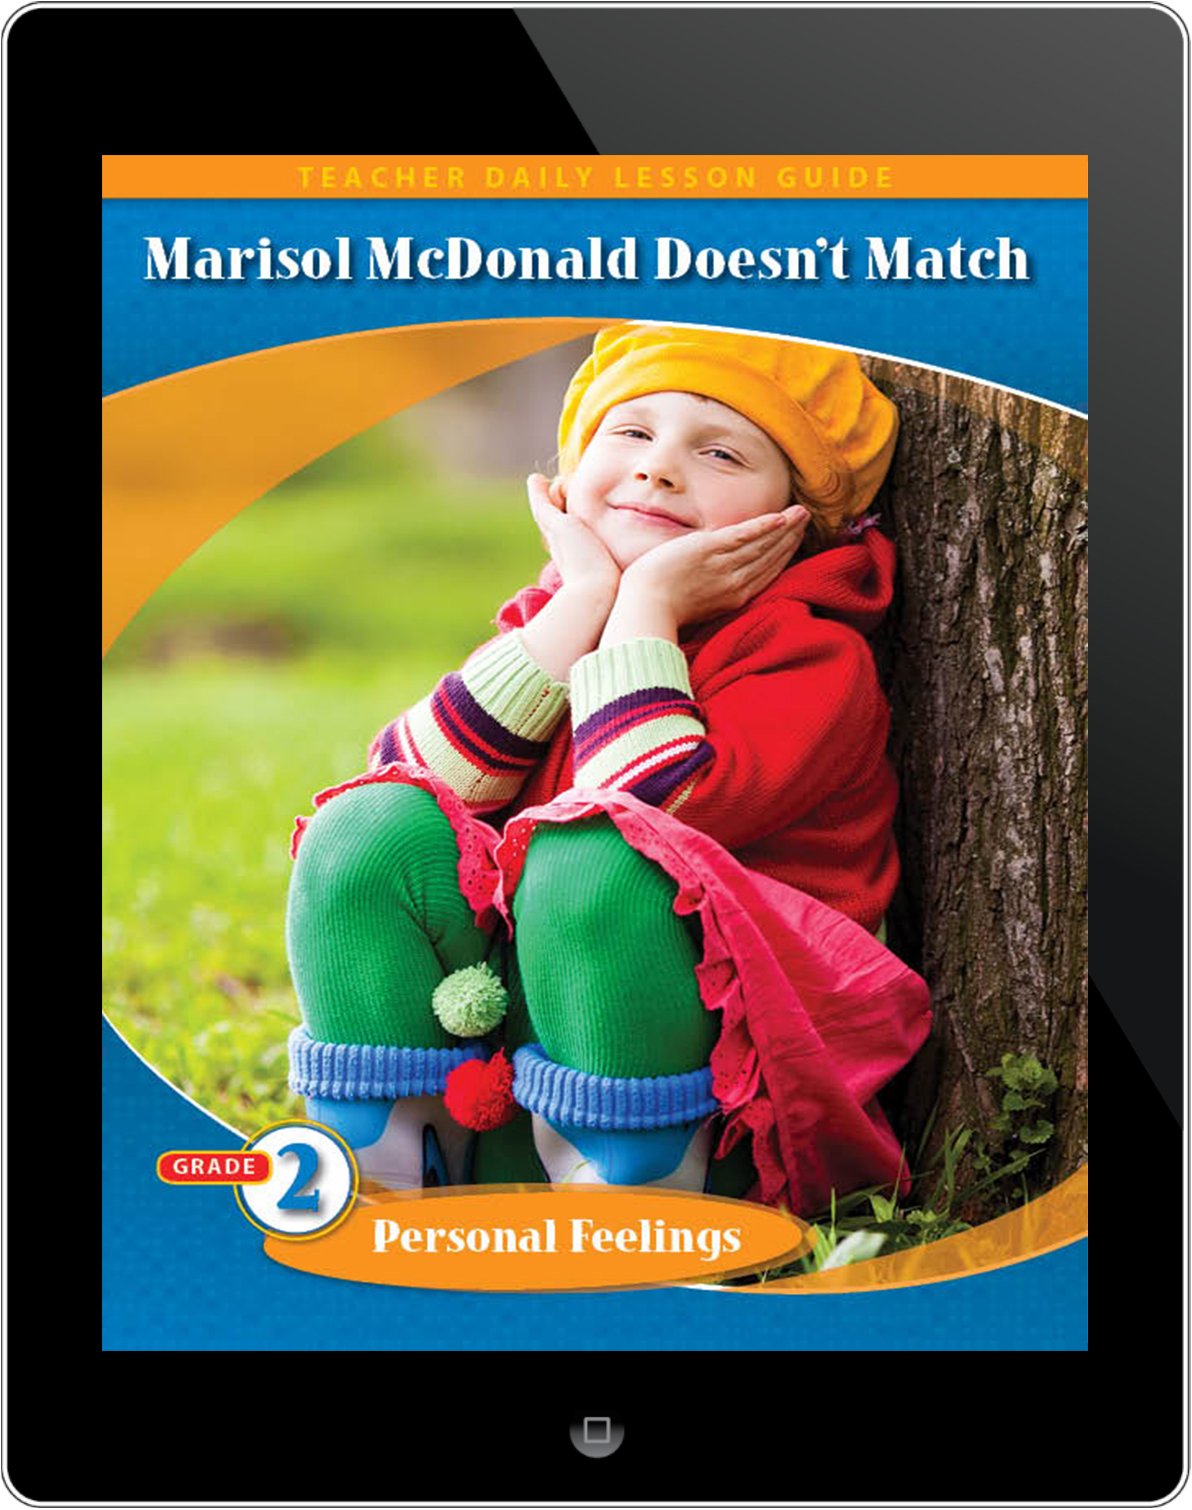 Pathways2.0 Grade 2 Personal Feelings Unit: Marisol McDonald Doesn't Match Daily Lesson Guide 5 Year License